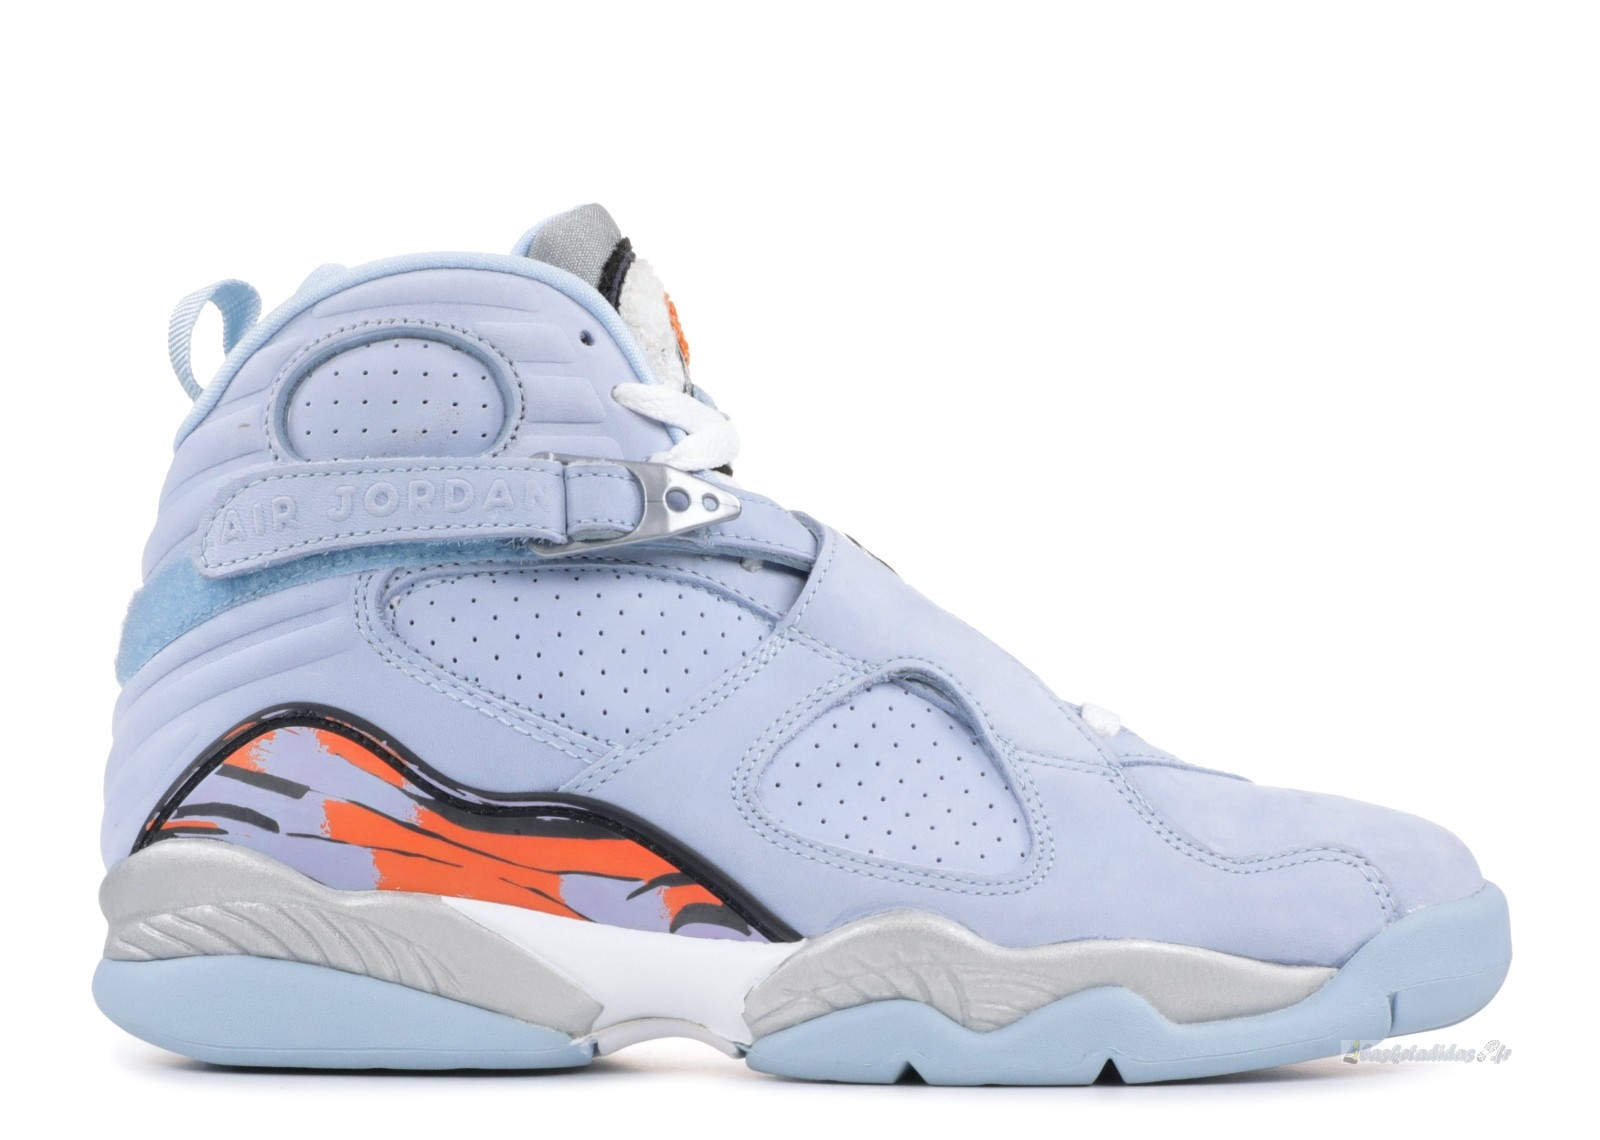 Chaussure de Basket Air Jordan 8 Femme Retro Bleu Orange (316836-401)